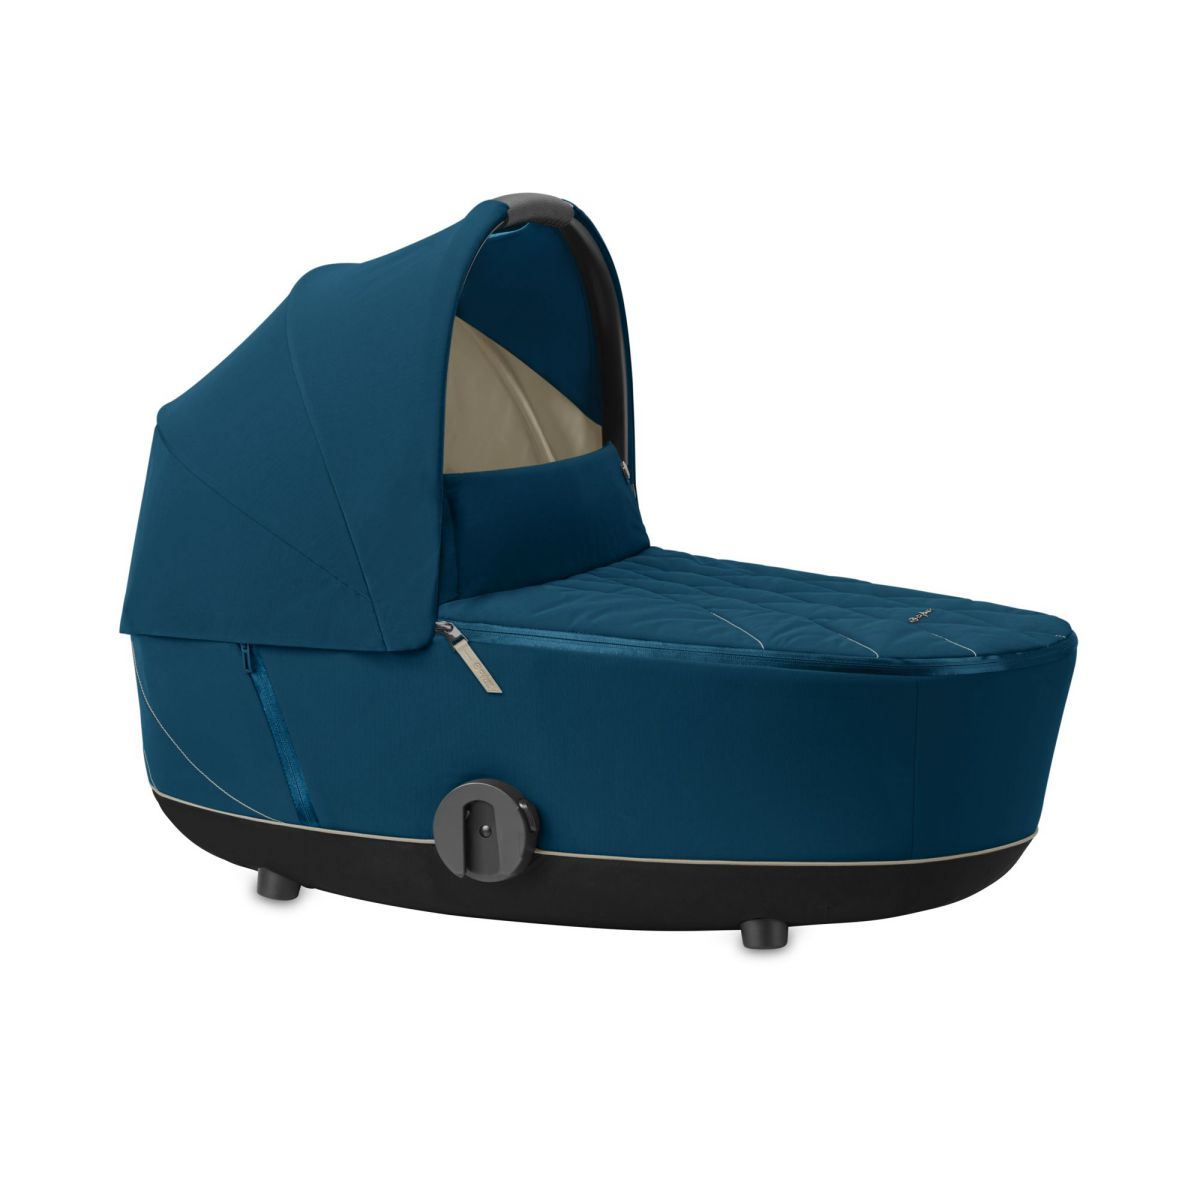 Capazo lux Mios Cybex